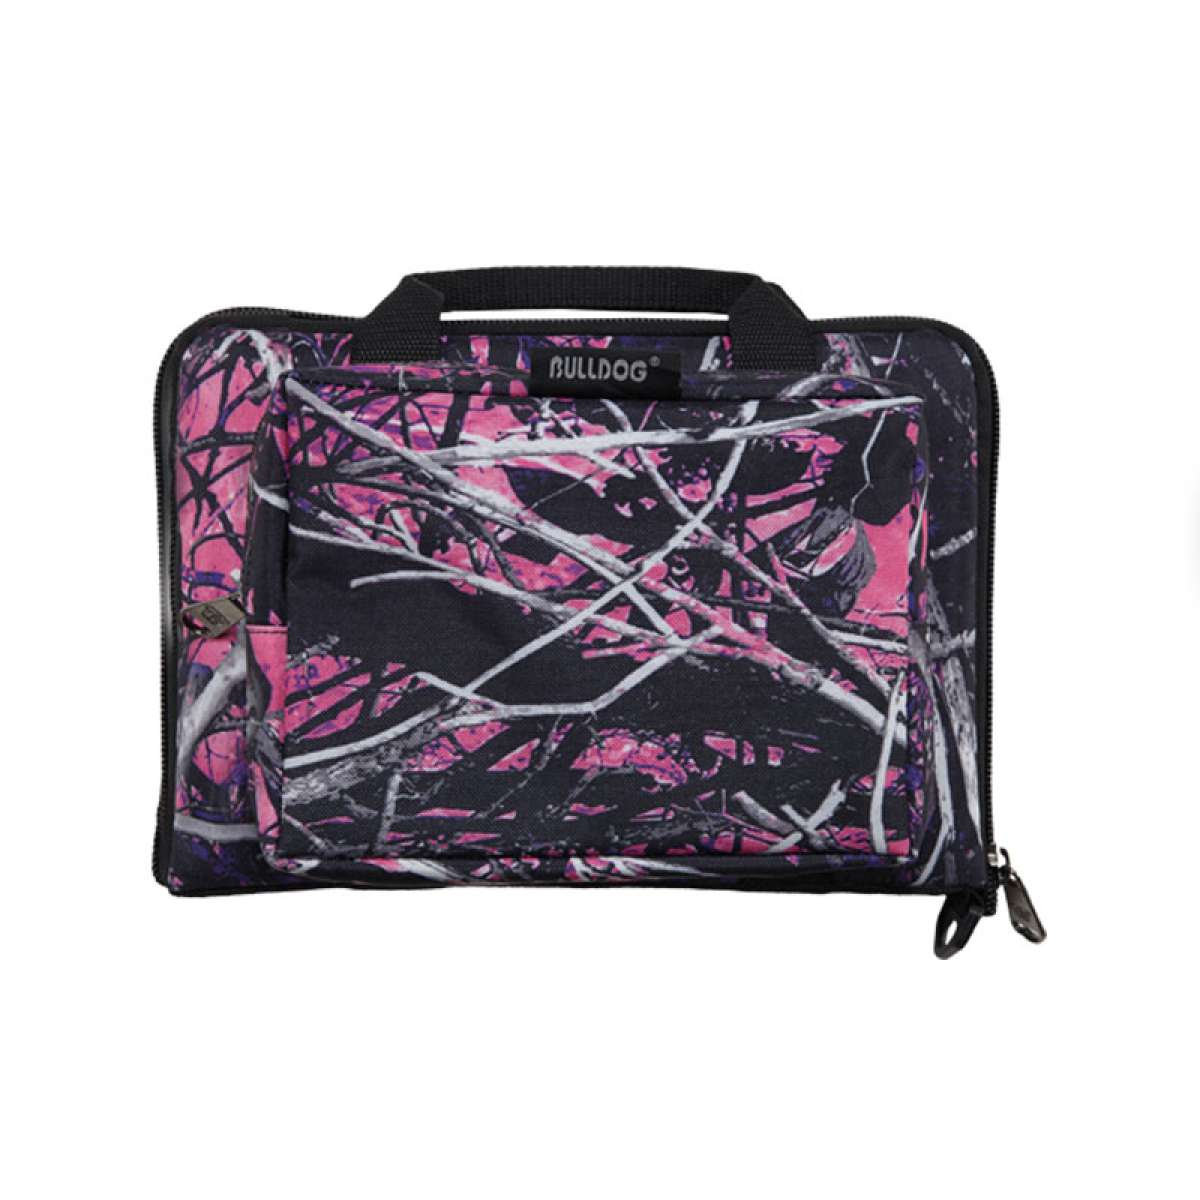 Bulldog Cases Range Bag Mini Muddy Girl